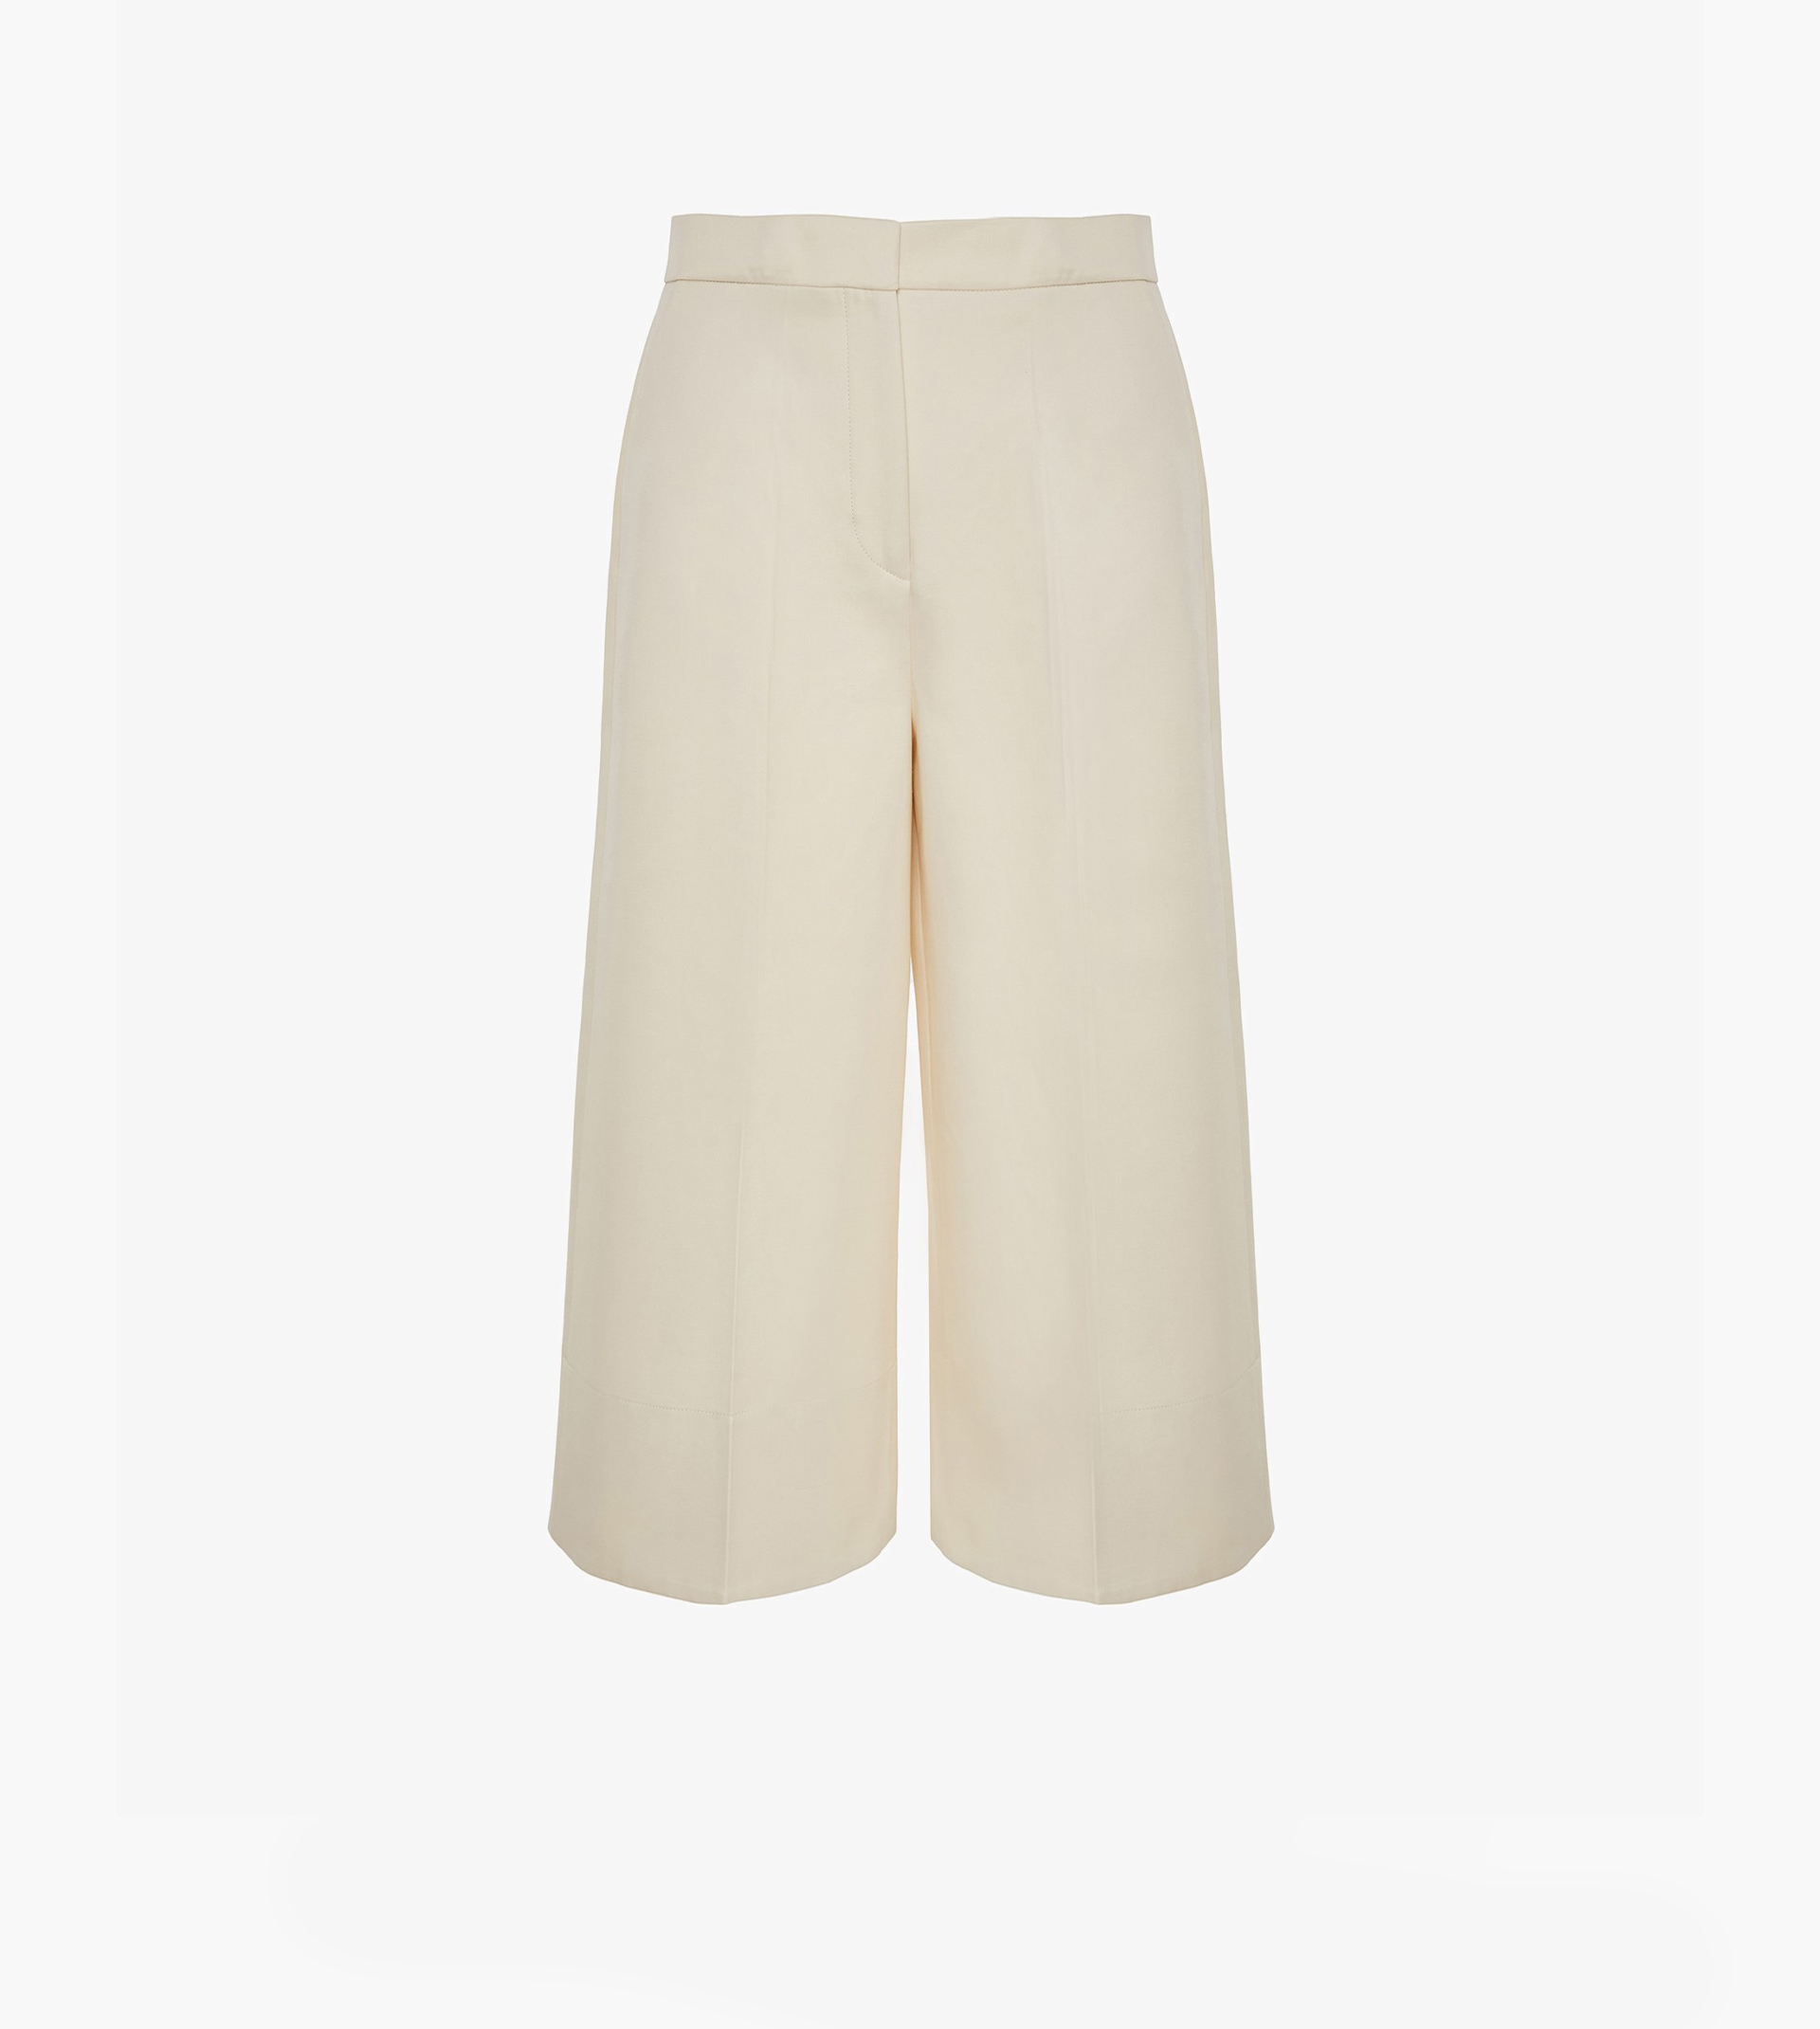 Toy cotton sateen trousers